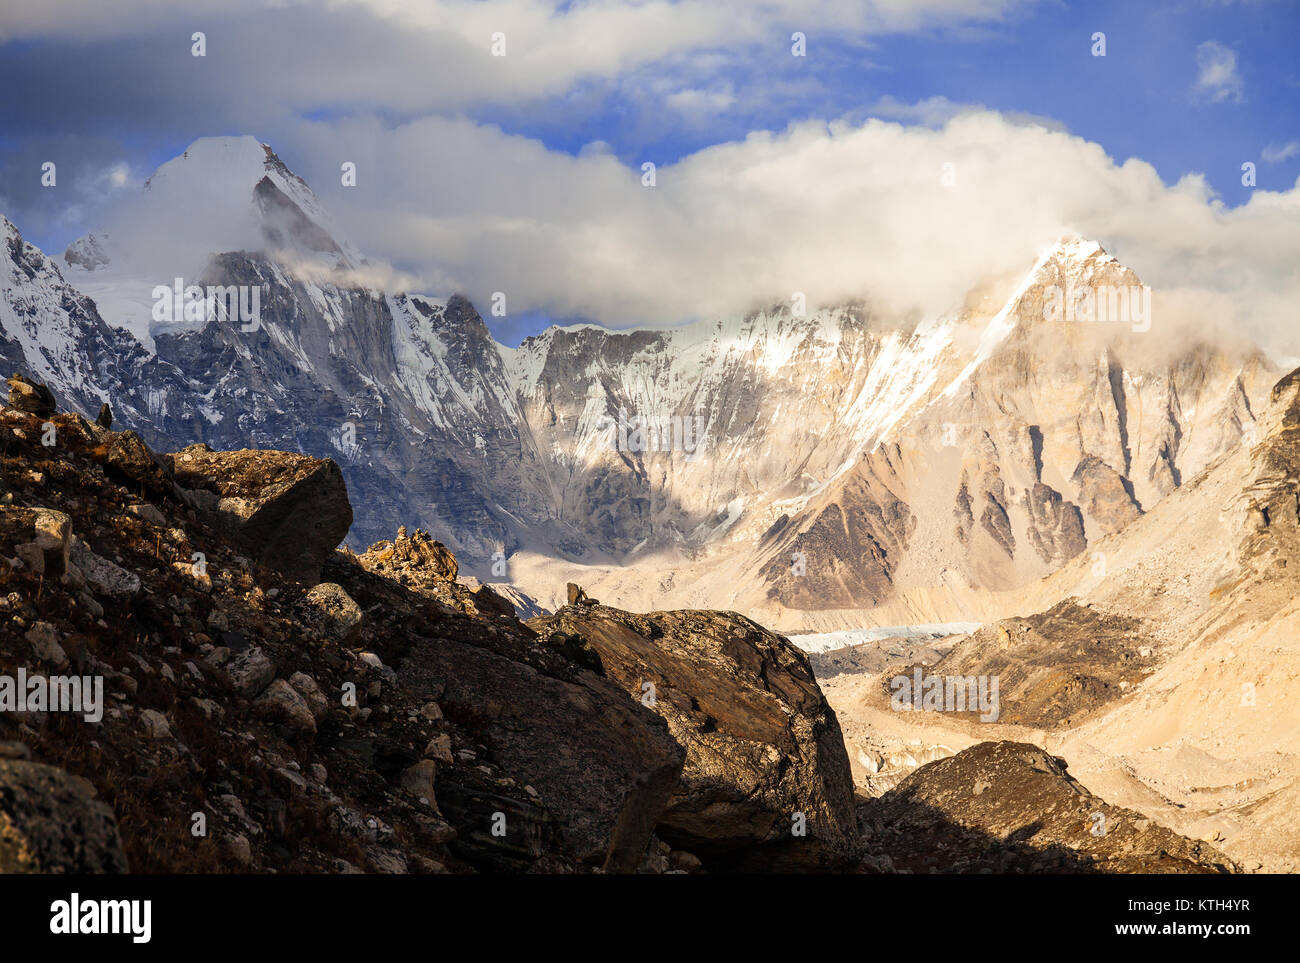 Nuptse, Everest region, Himalaya, Nepal - Stock Image